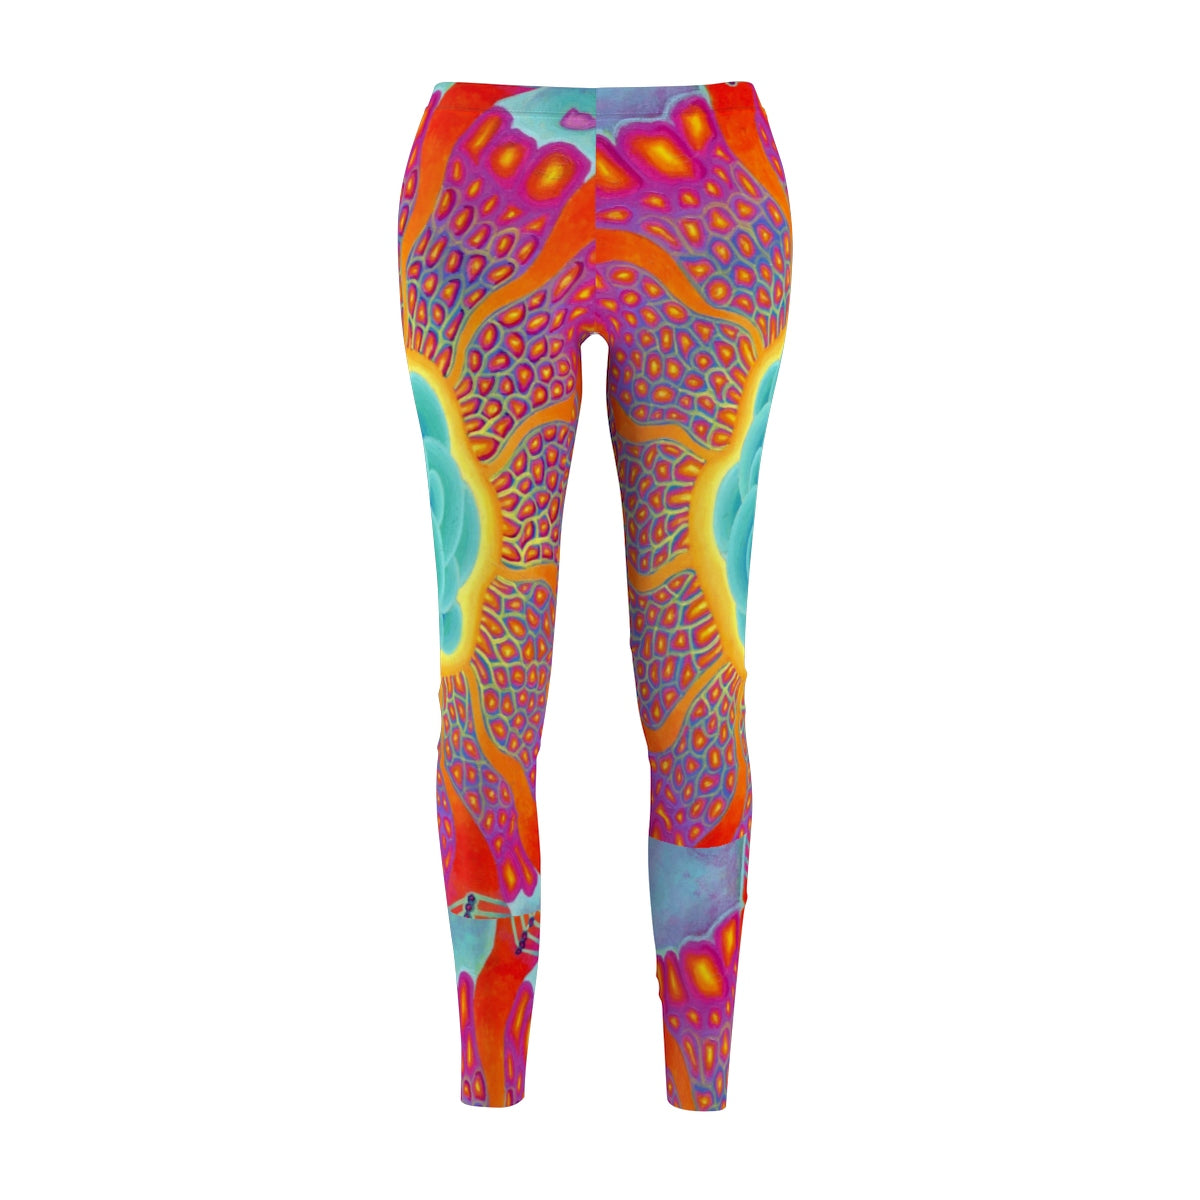 Undula Leggings